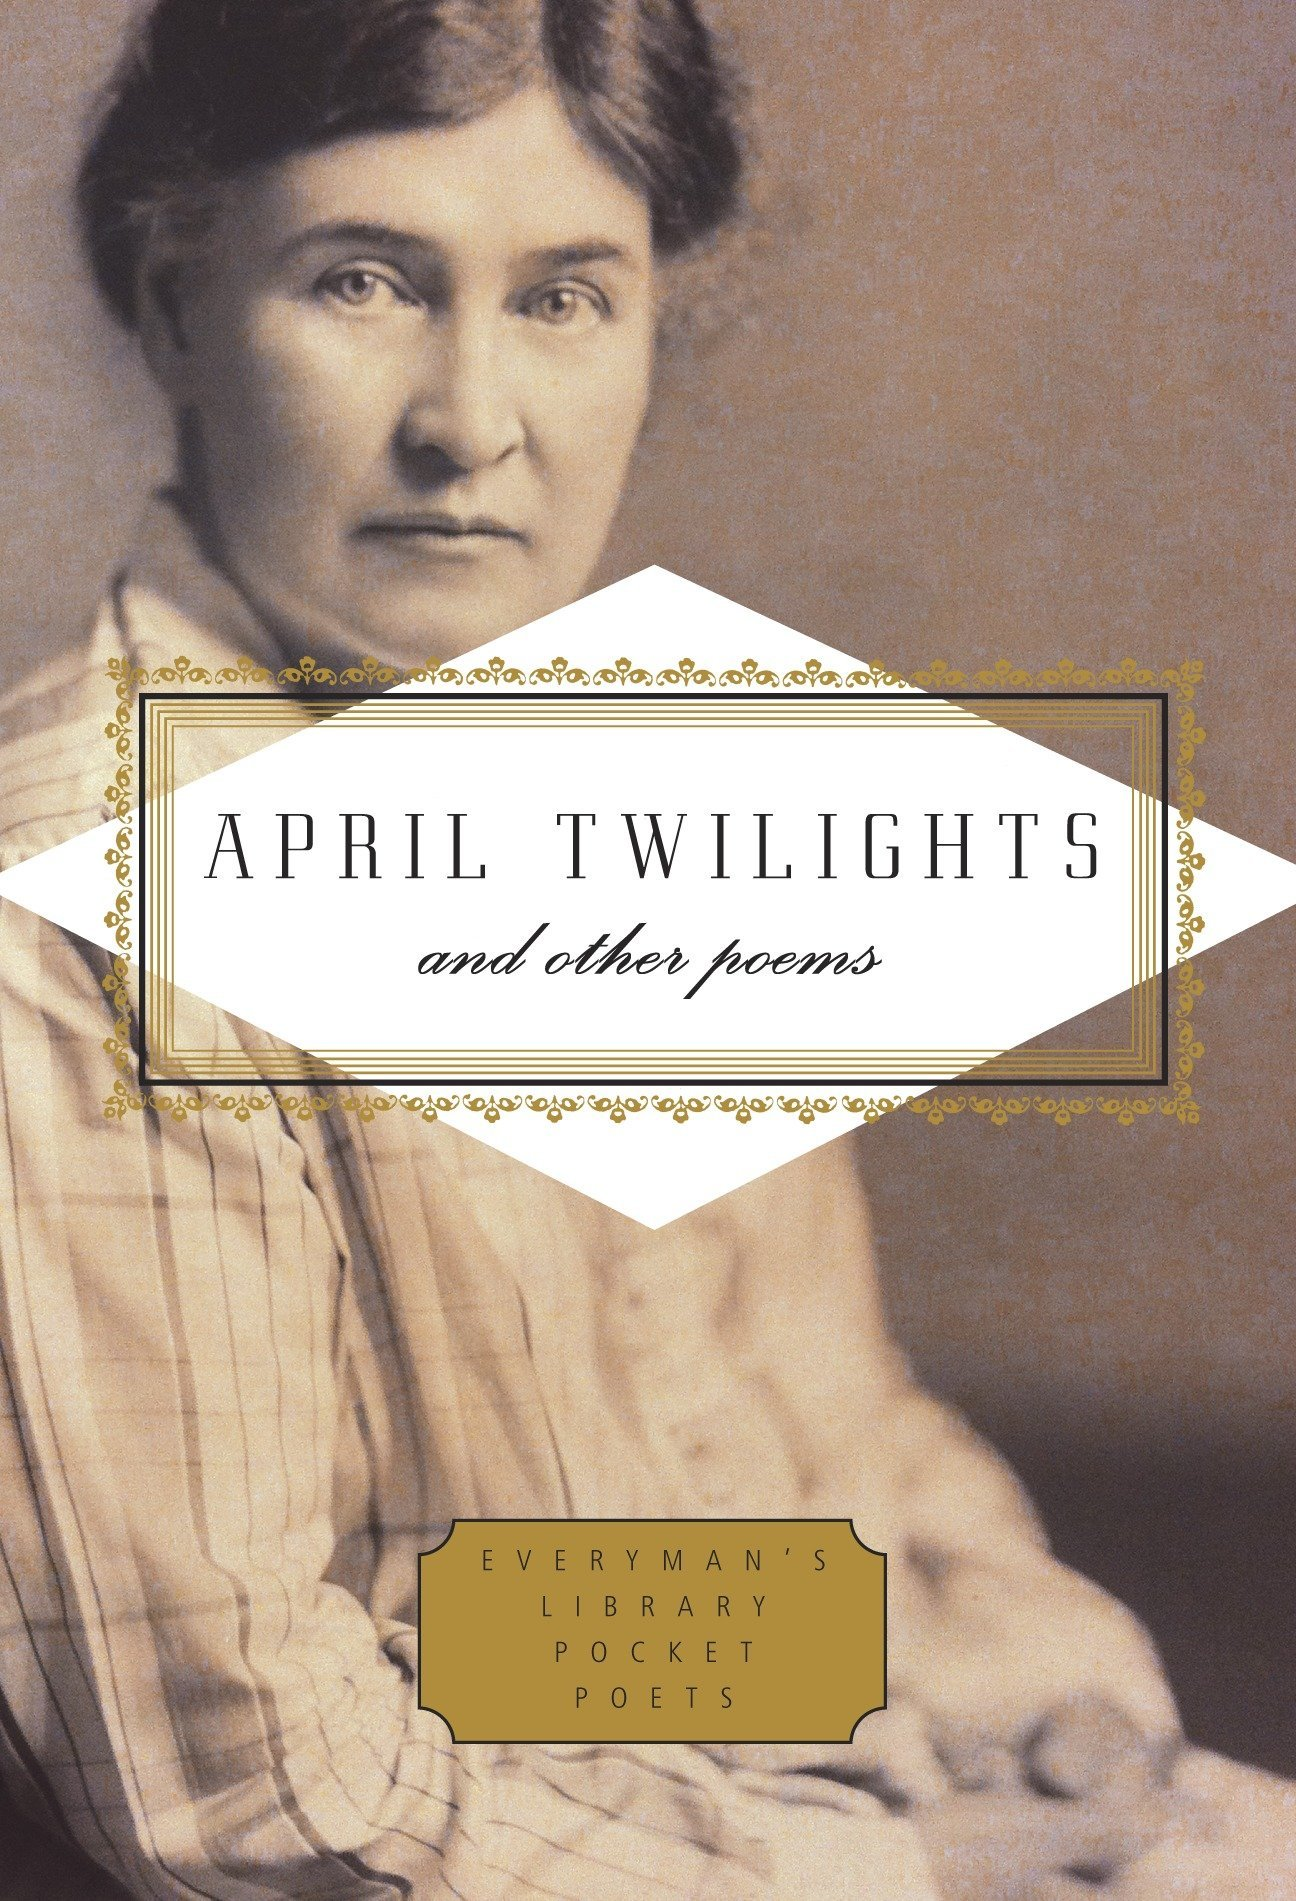 April Twilights and Other Poems (Everyman's Library Pocket Poets Series) PDF